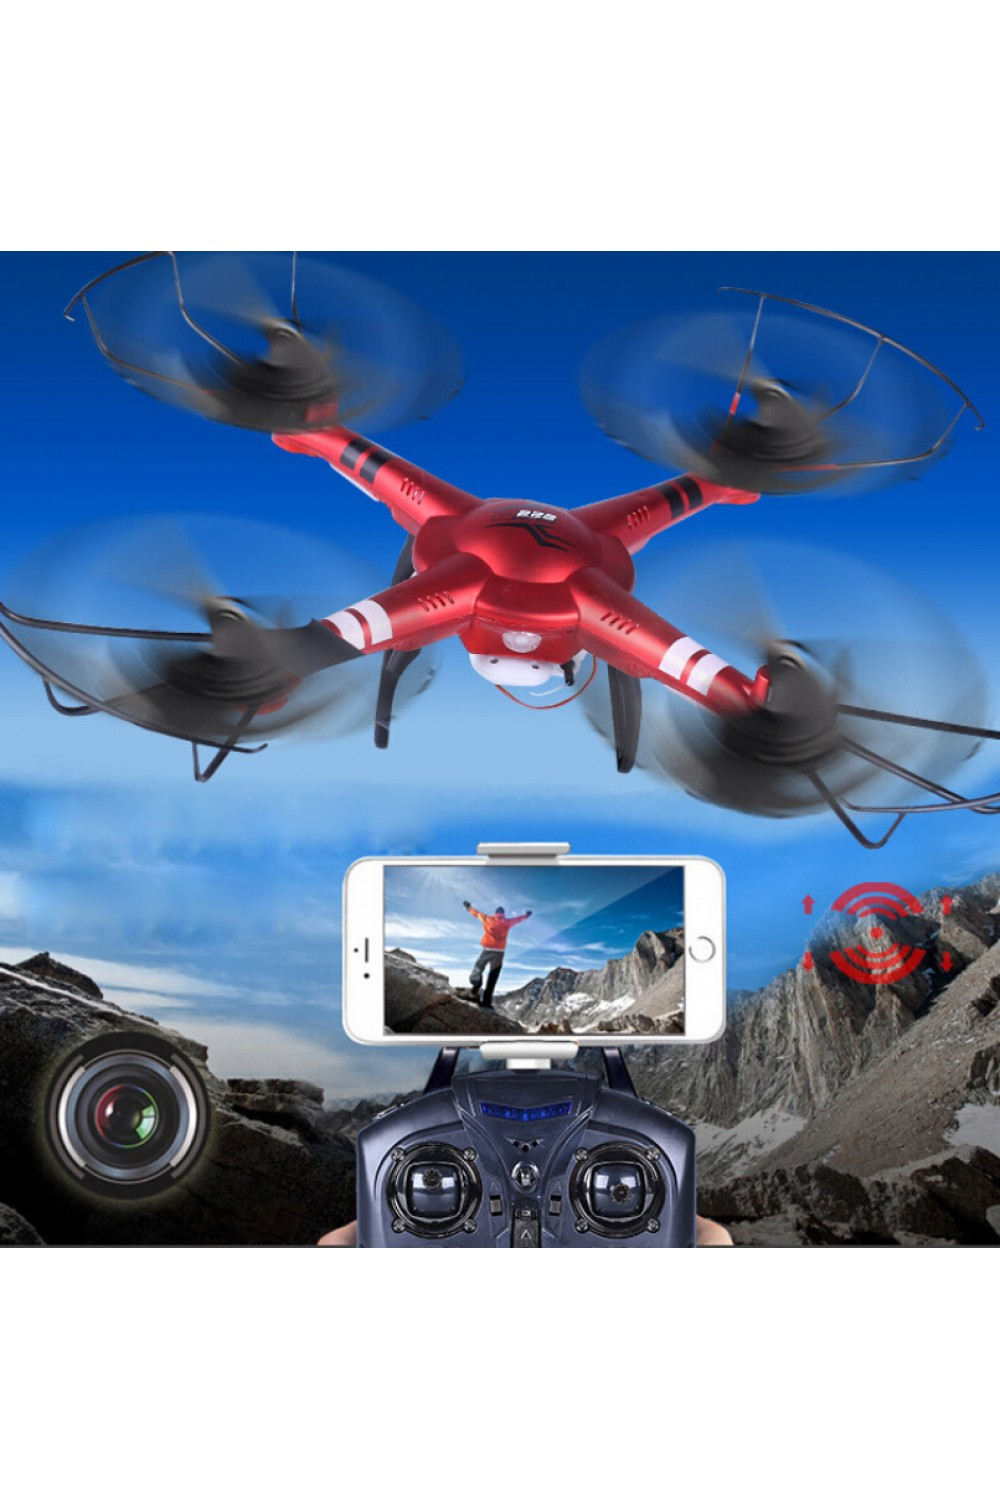 WLtoys Q222K Q222-K WiFi FPV 720P RC Quadcopter RTF 2.4GHz drone  with HD Camera High Hold Mode One Key Return VS X5SW X5HW